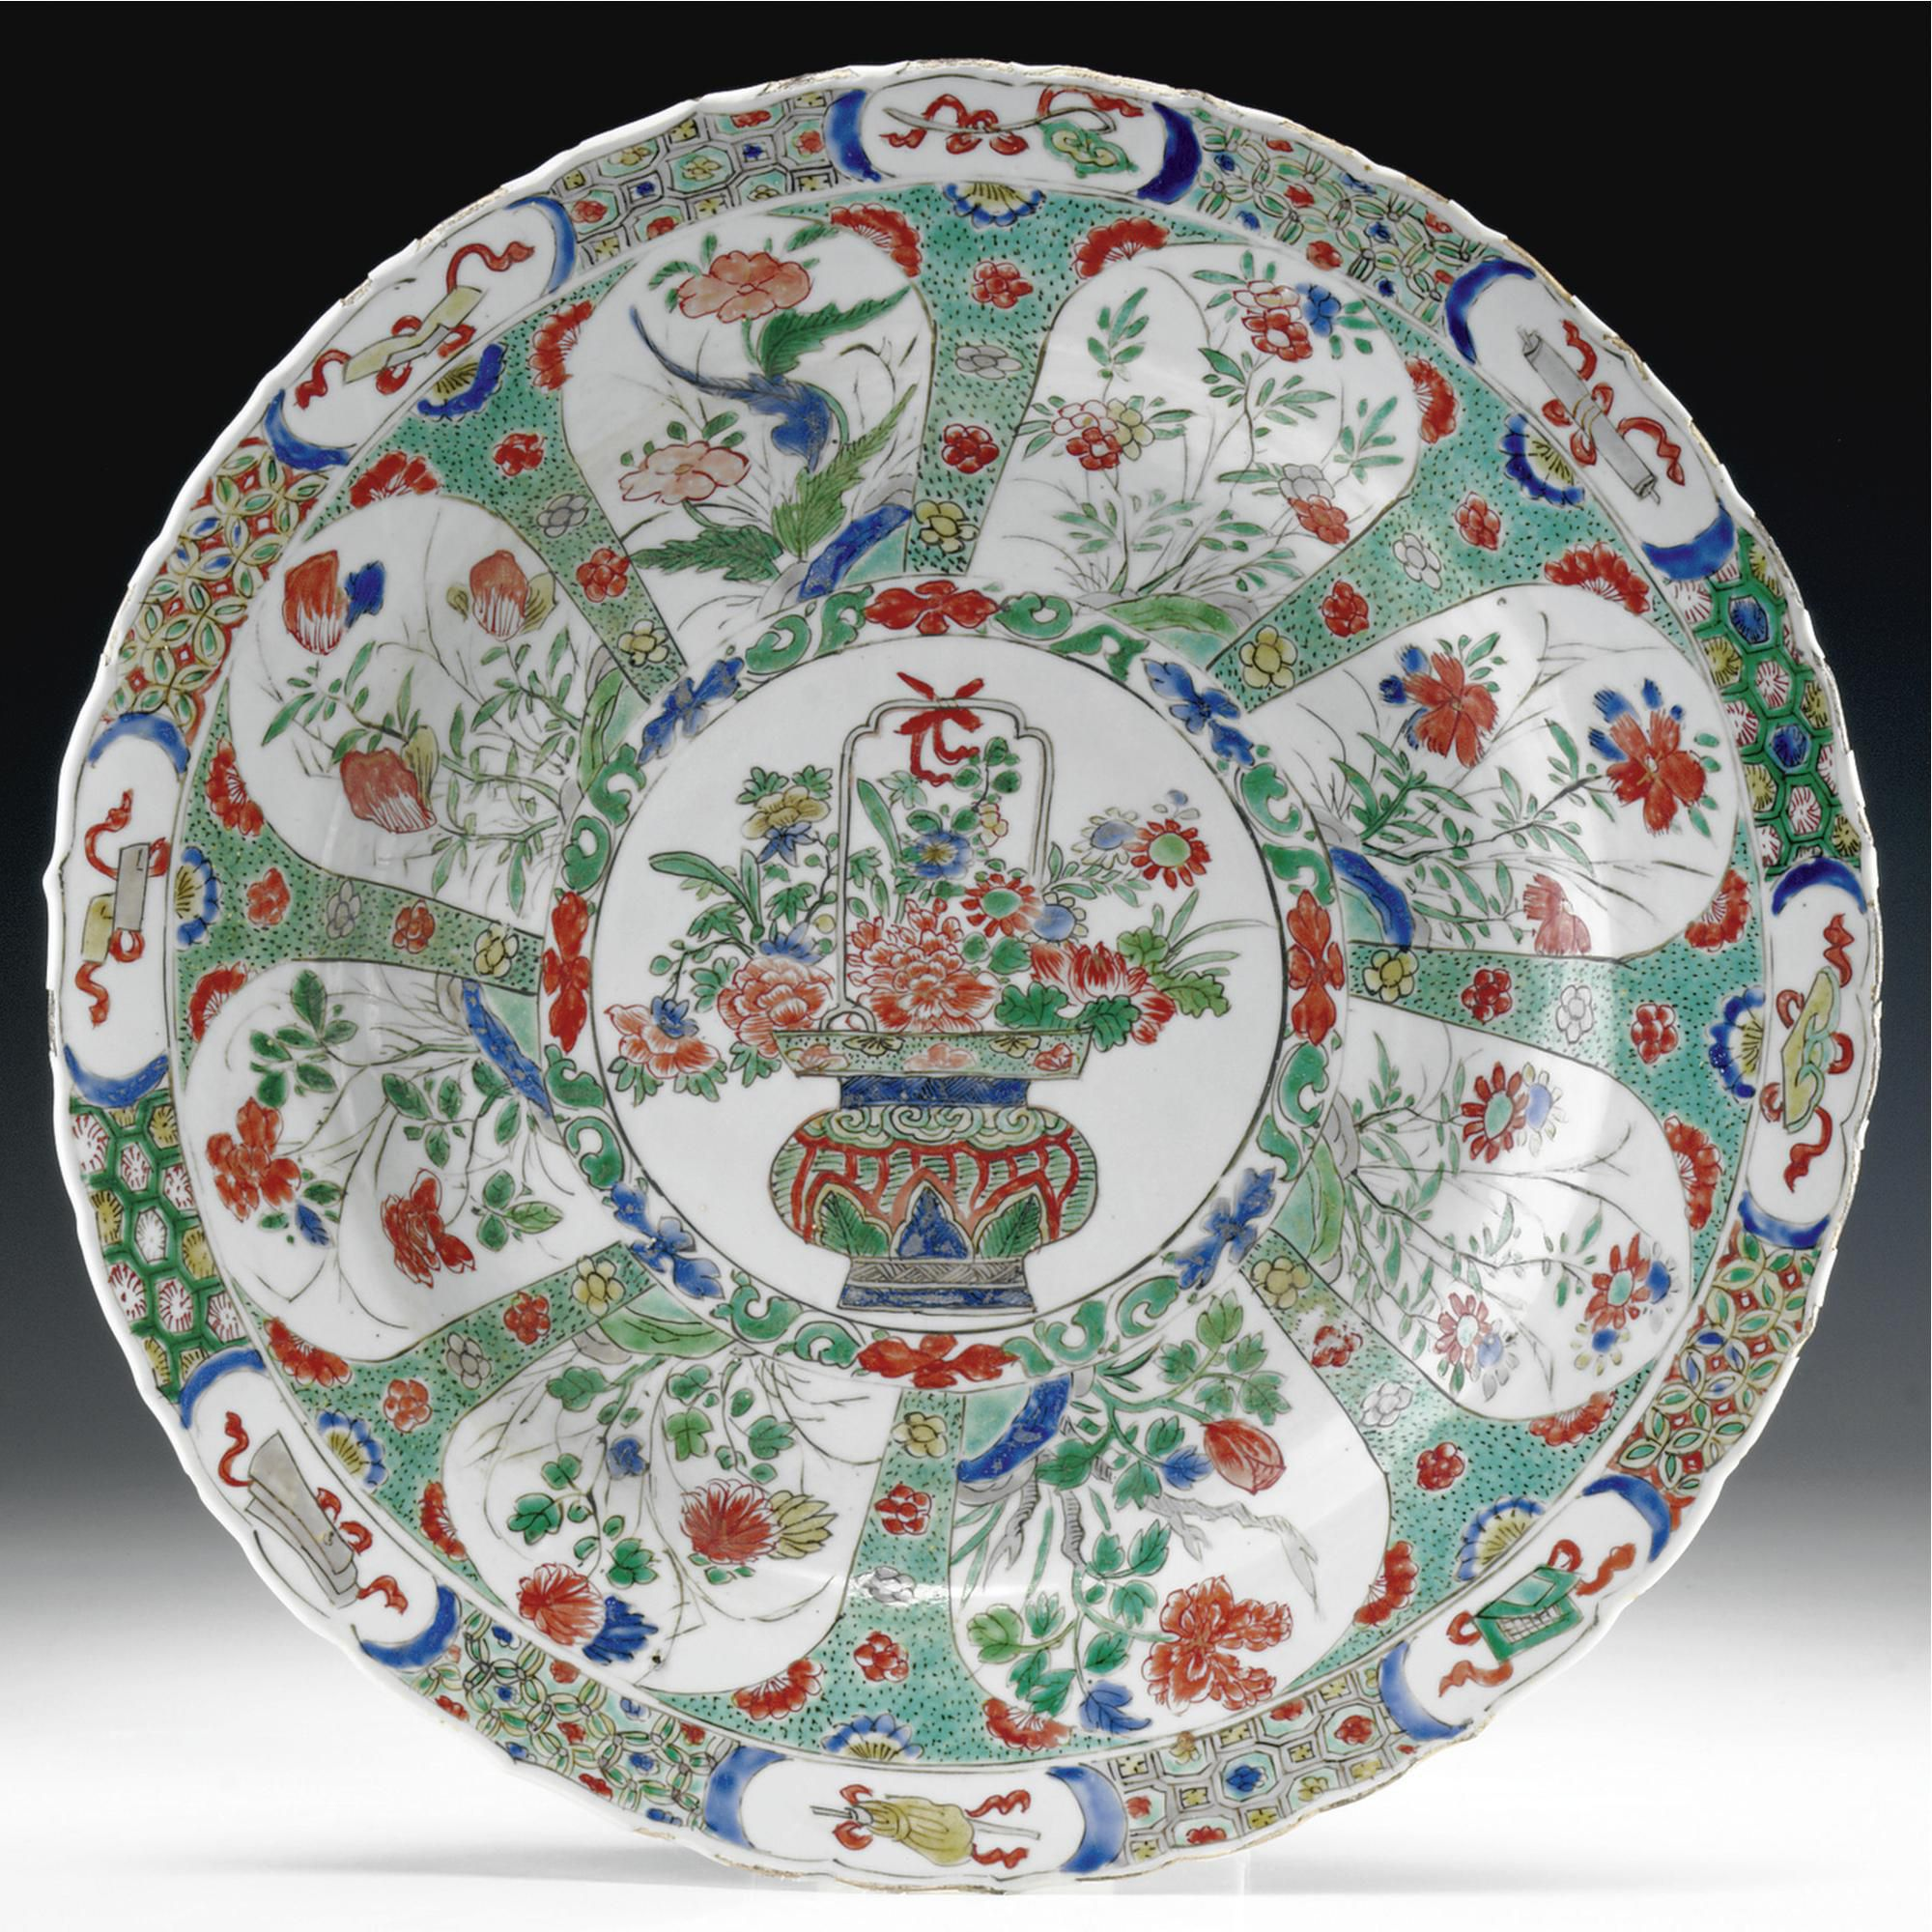 A CHINA PORCELAIN FAMILLE VERTE DISH, EARLY 18TH CENTURY